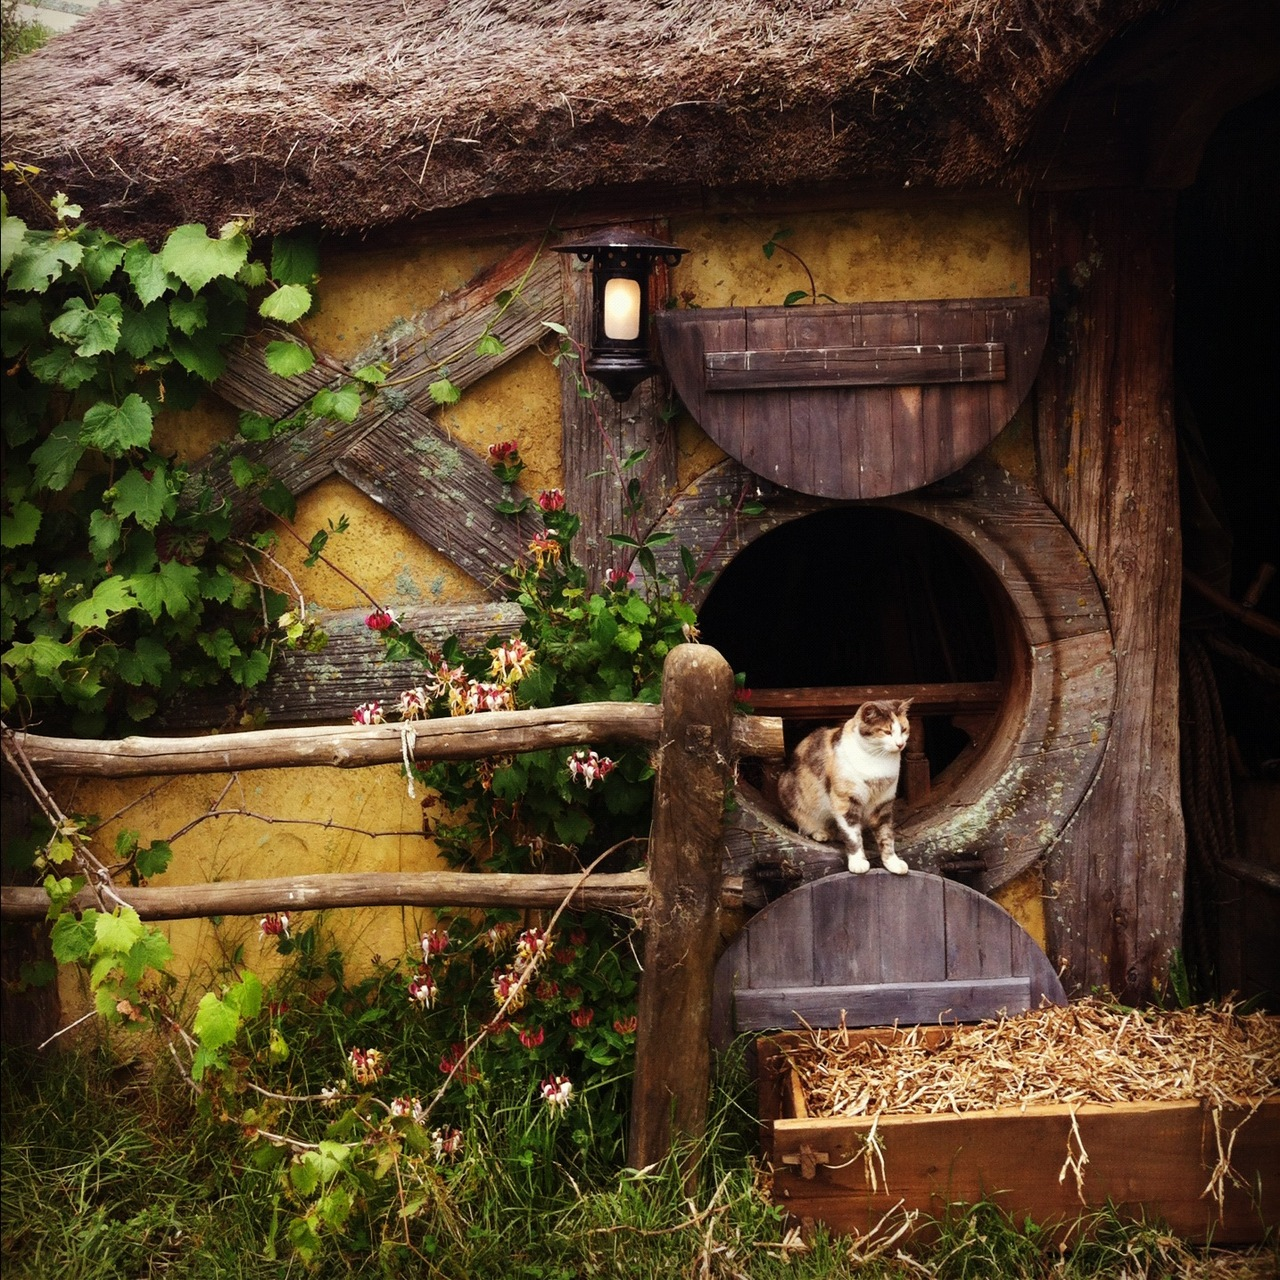 Hobbit House Pictures | The Hobbit Set Photos